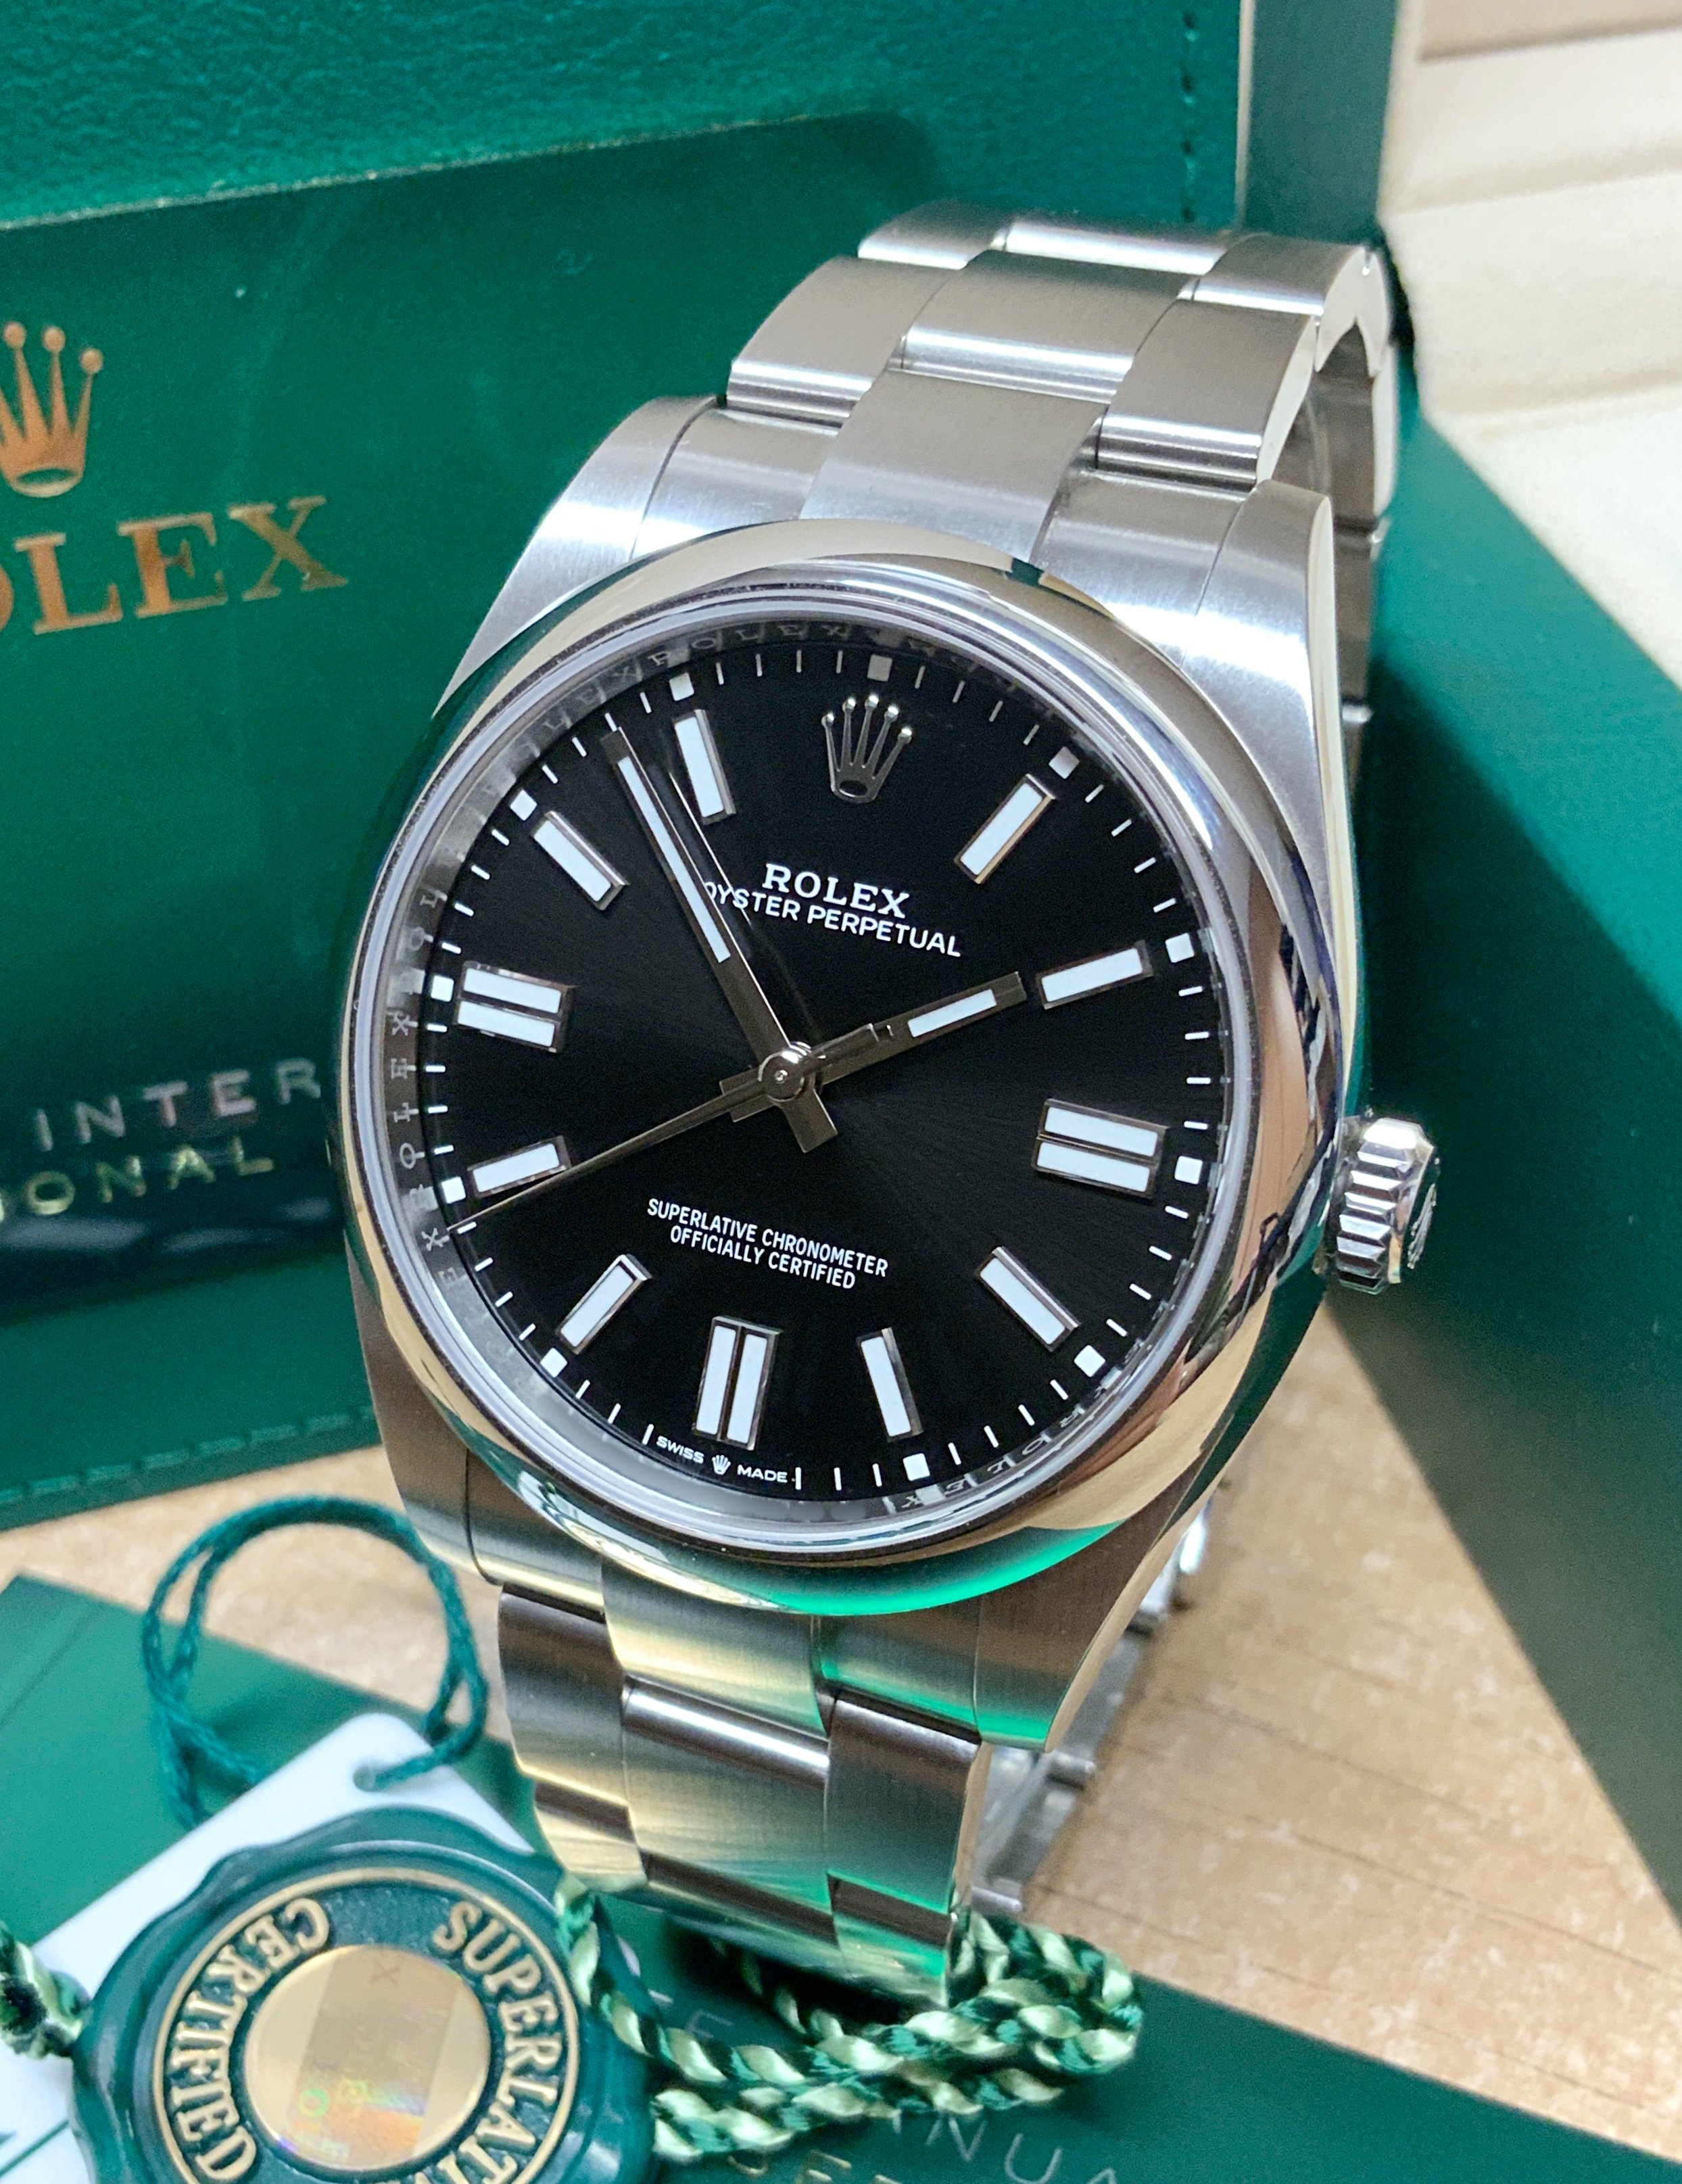 Rolex Oyster Perpetual 41 124300 Black Dial